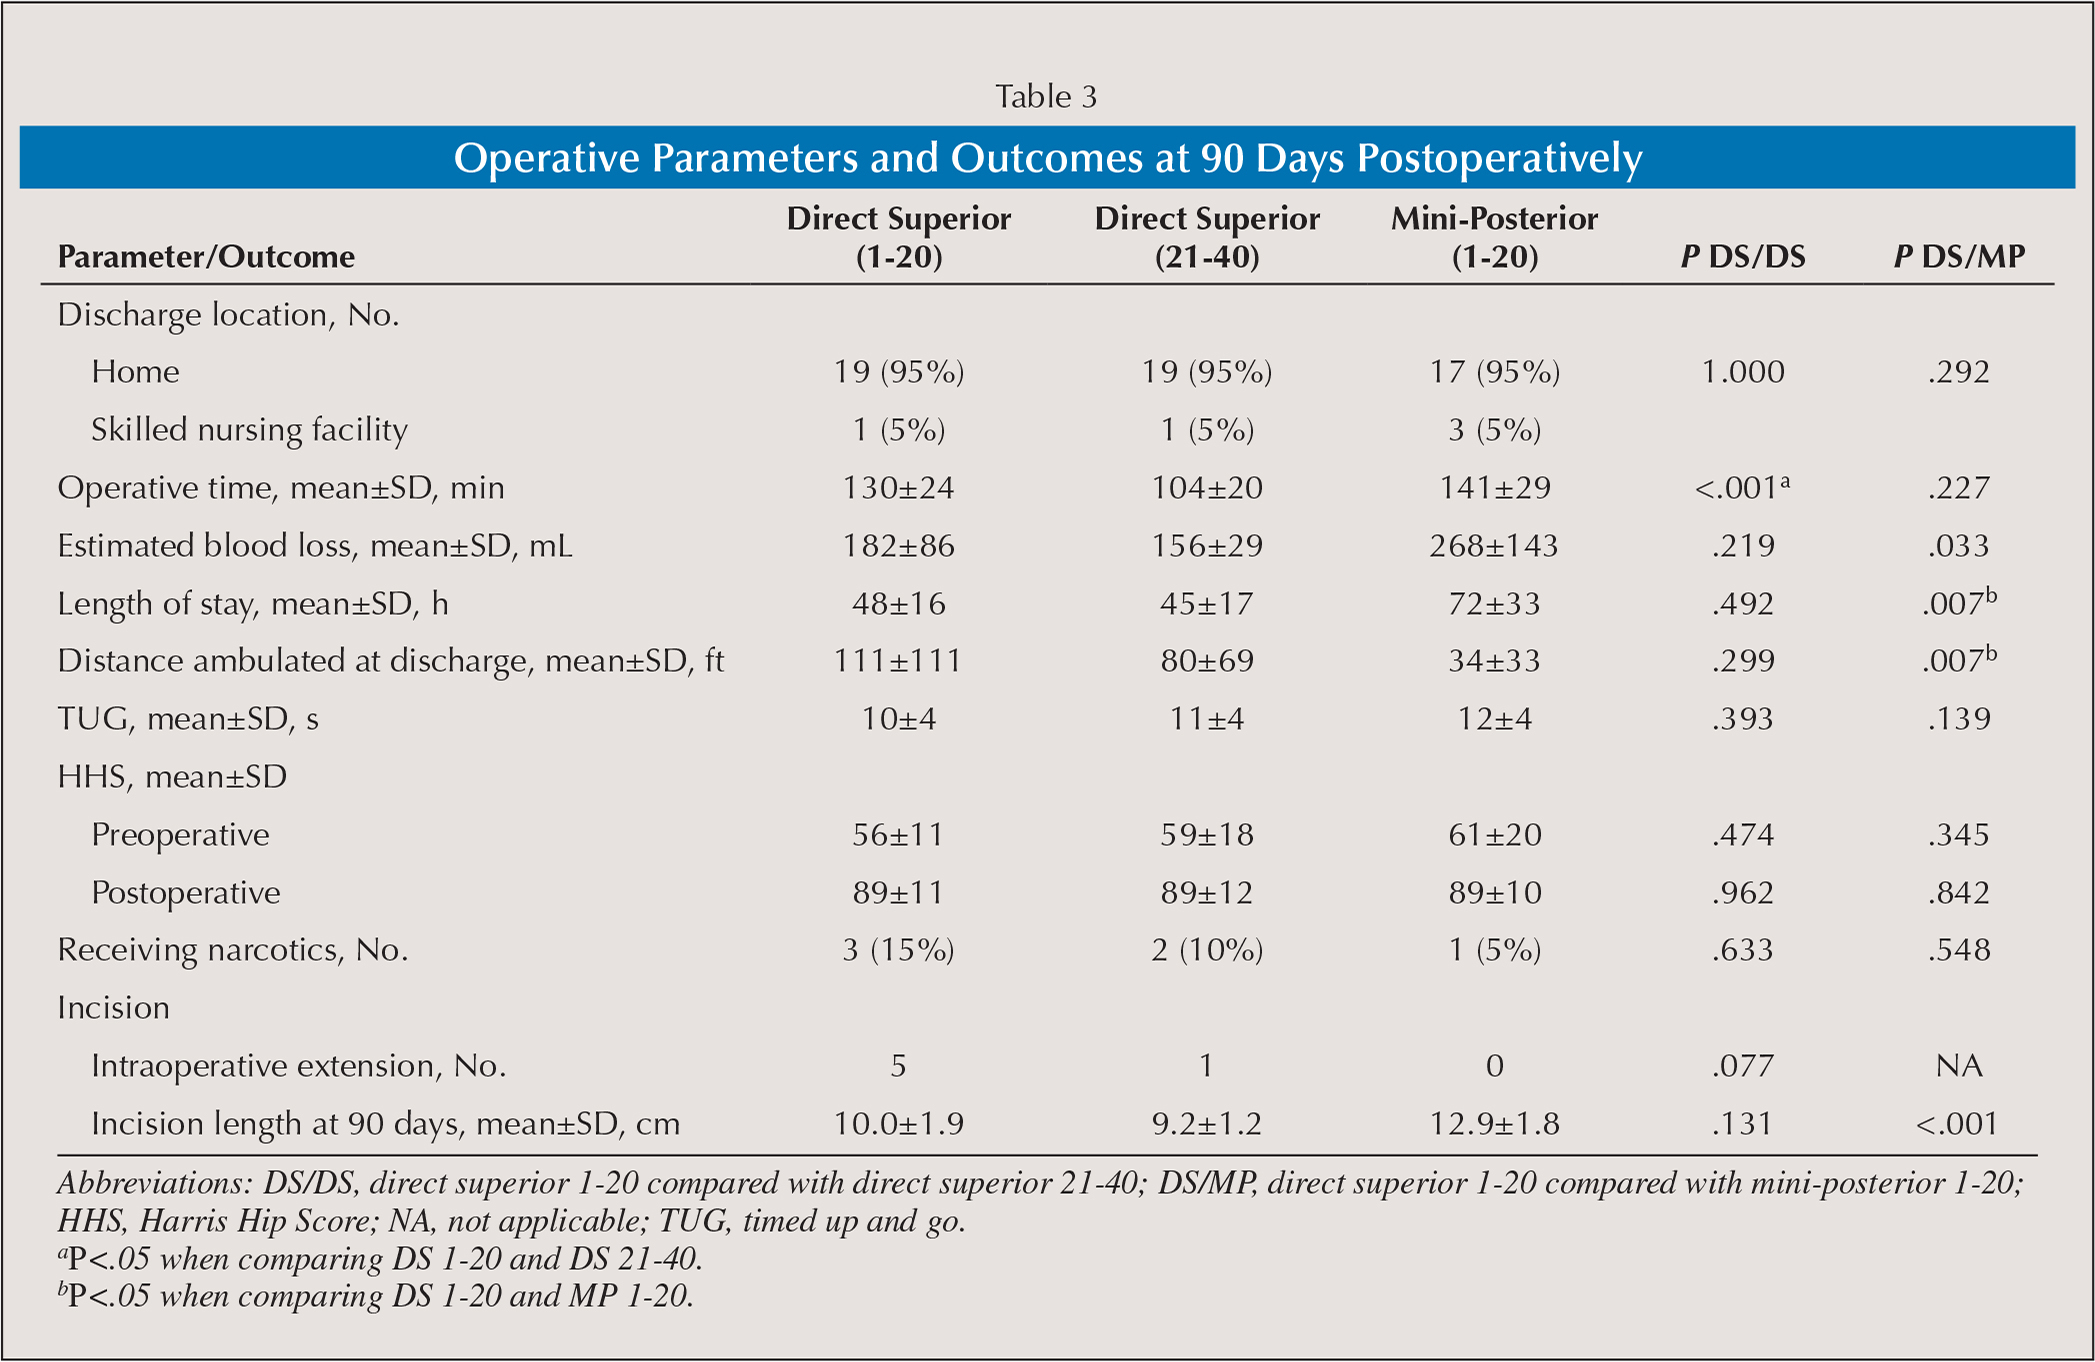 Operative Parameters and Outcomes at 90 Days Postoperatively